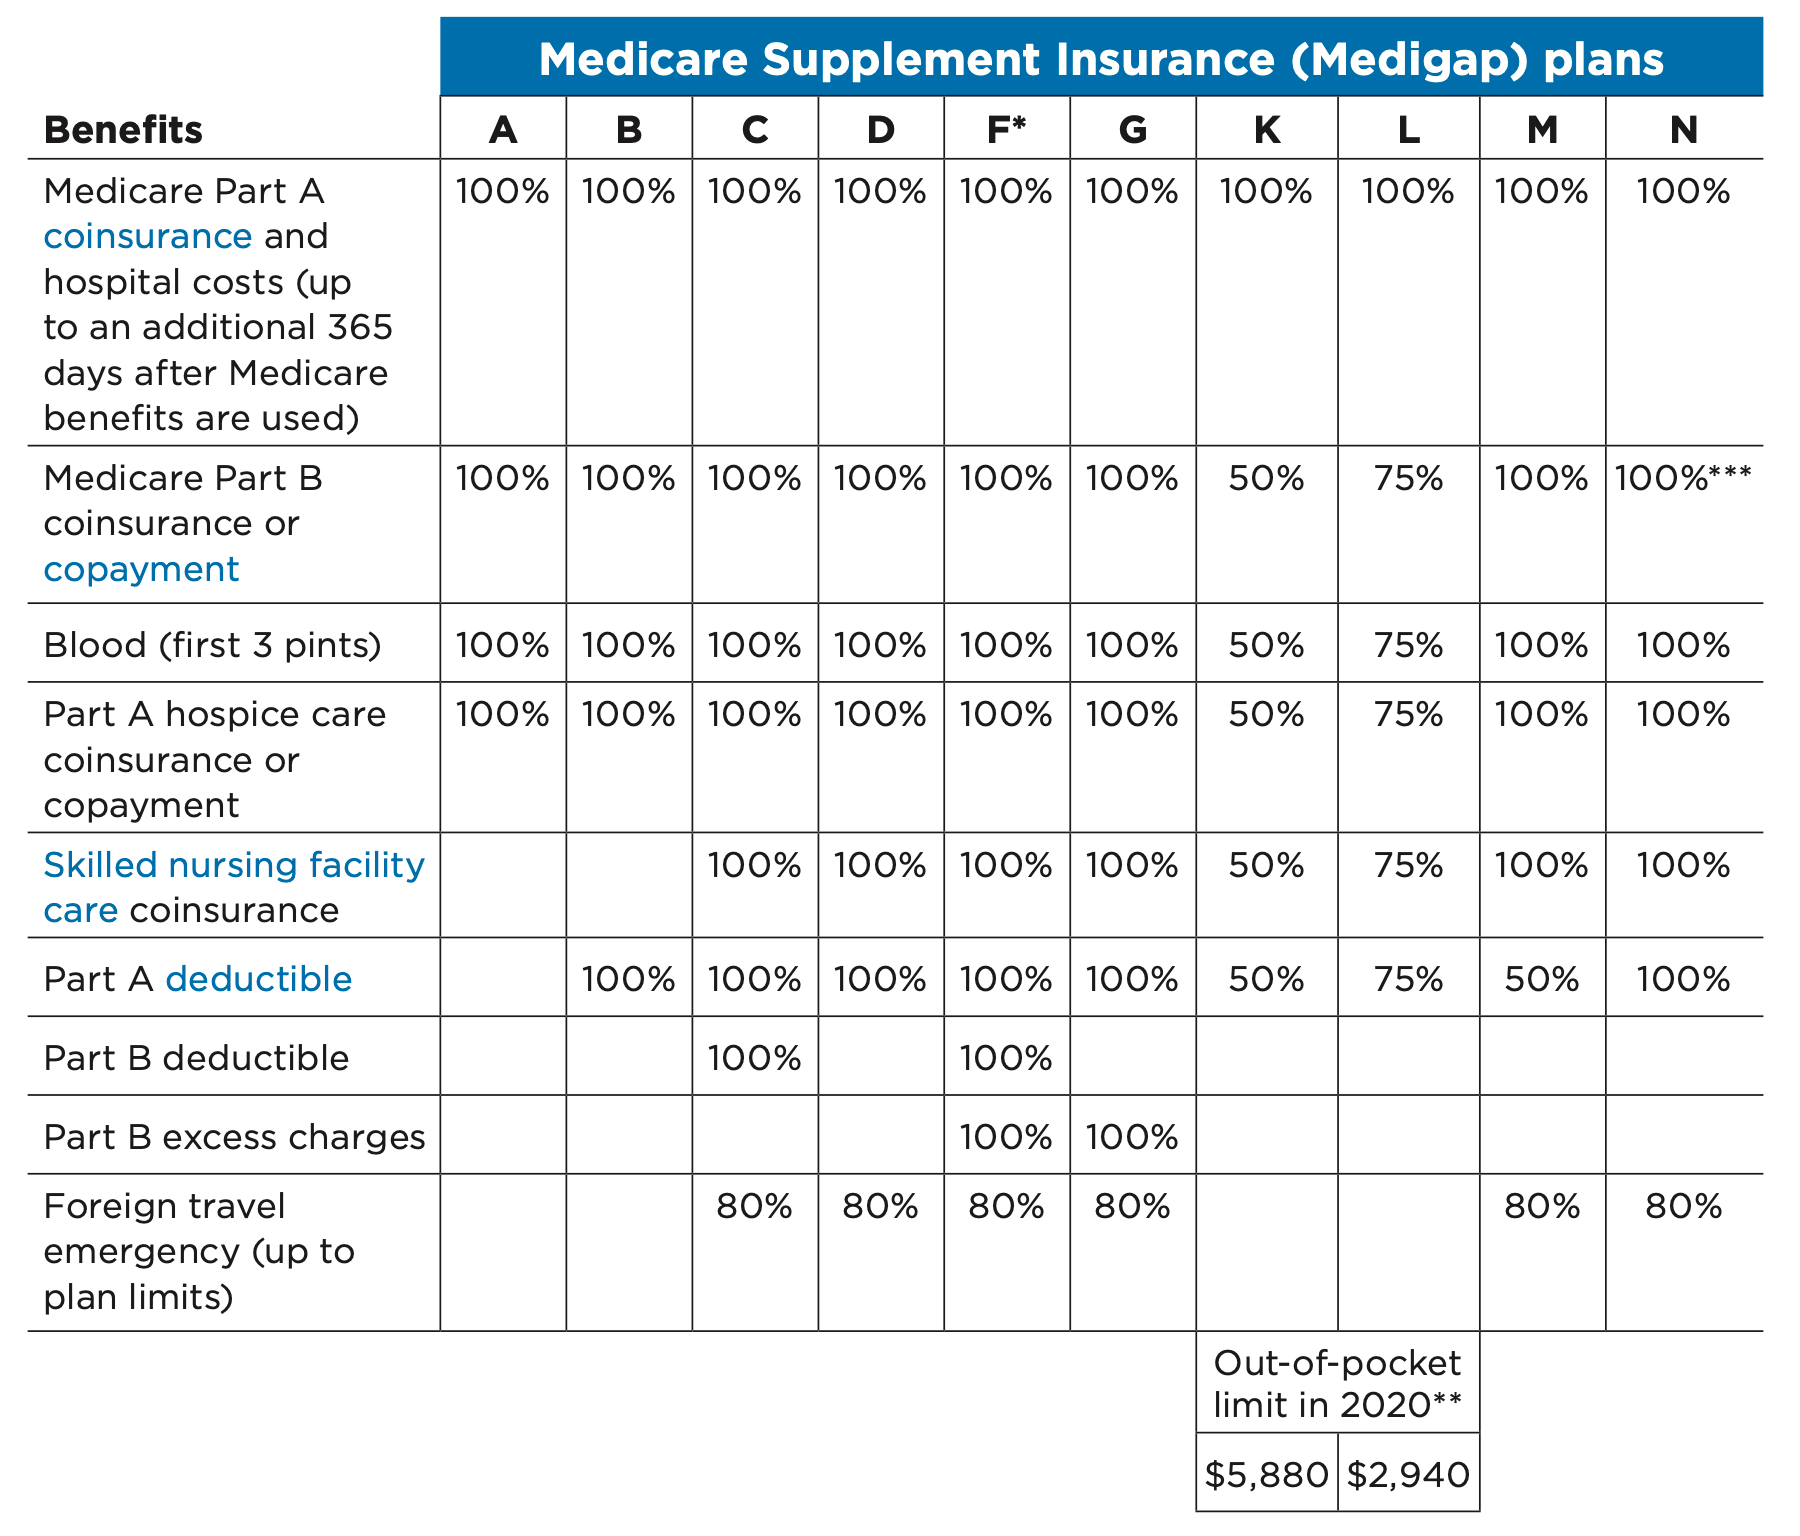 A chart of Medicare Supplement Insurance plans (Medigap plans)